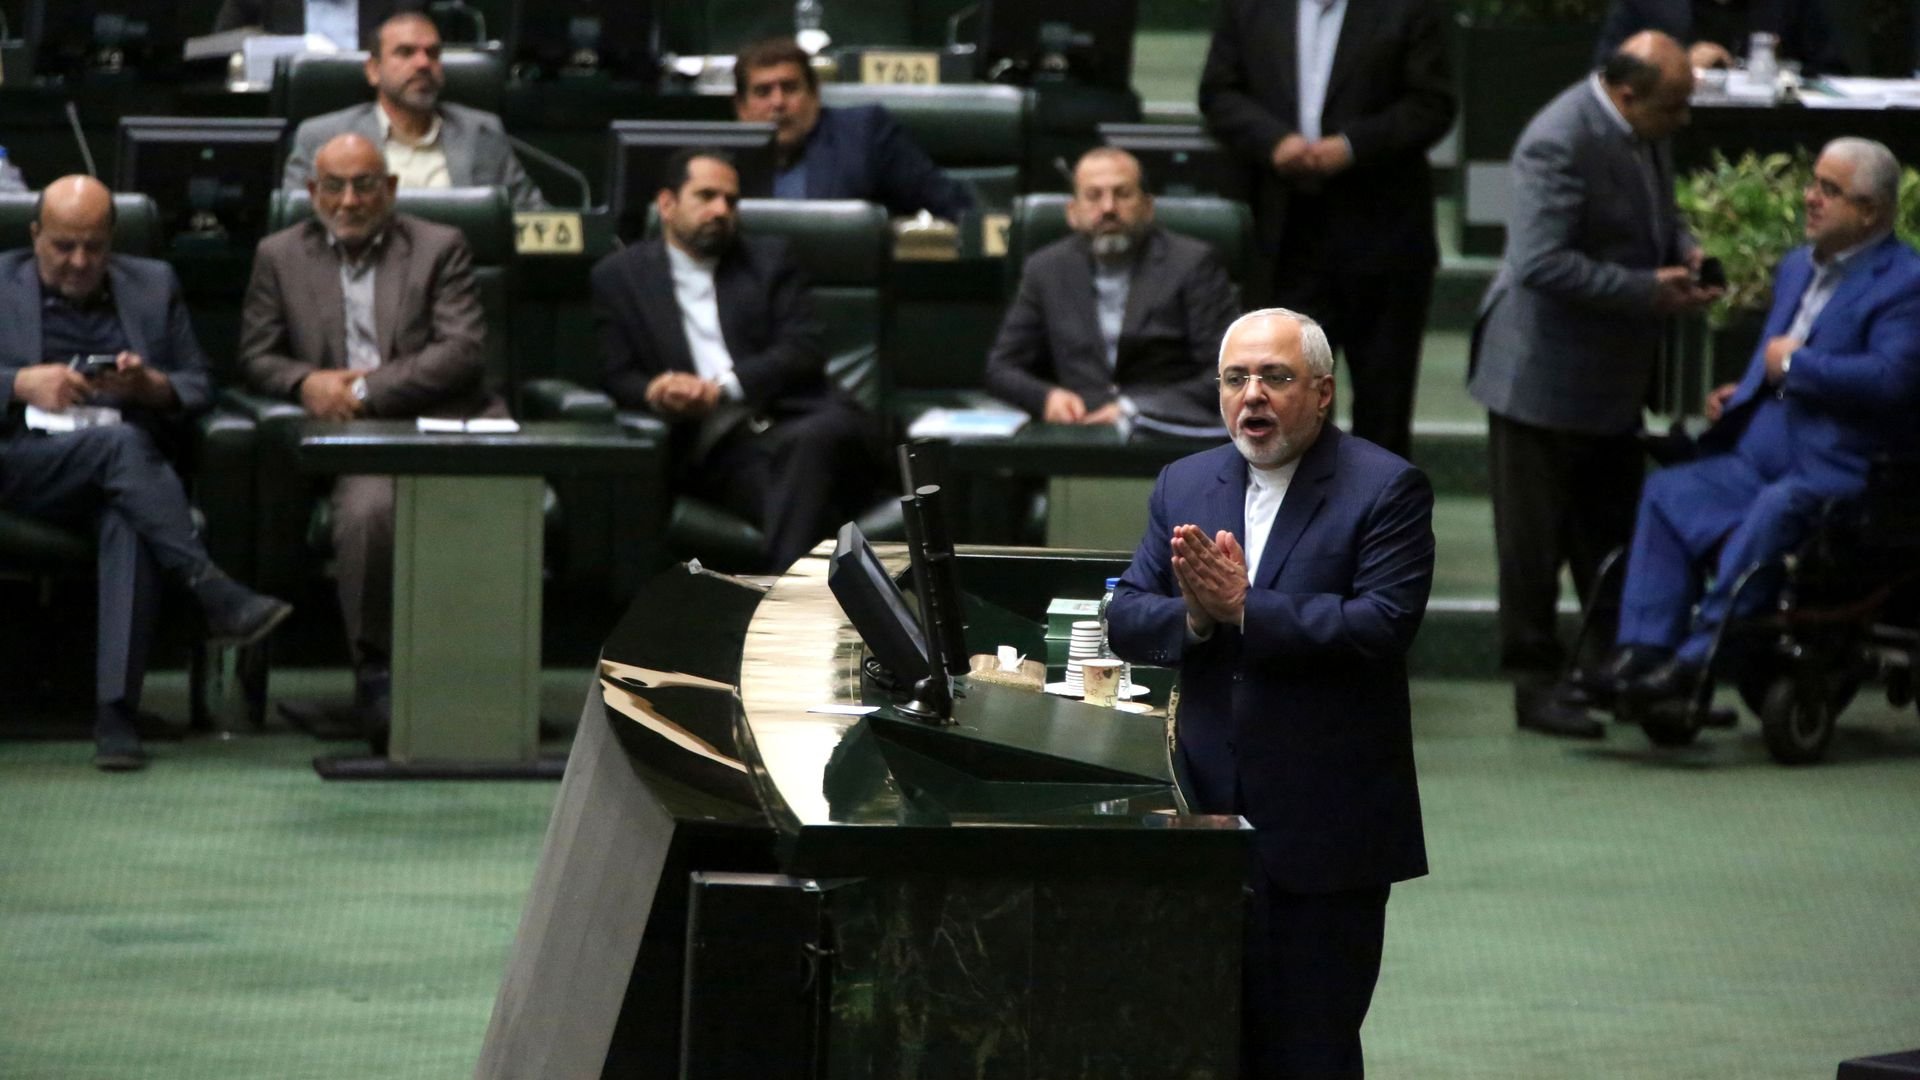 Iran's Foreign Minister Mohammad Javad Zarif delivers a speech to the parliament in Tehran on October 7, 2018, over the a bill to counter terrorist financing.